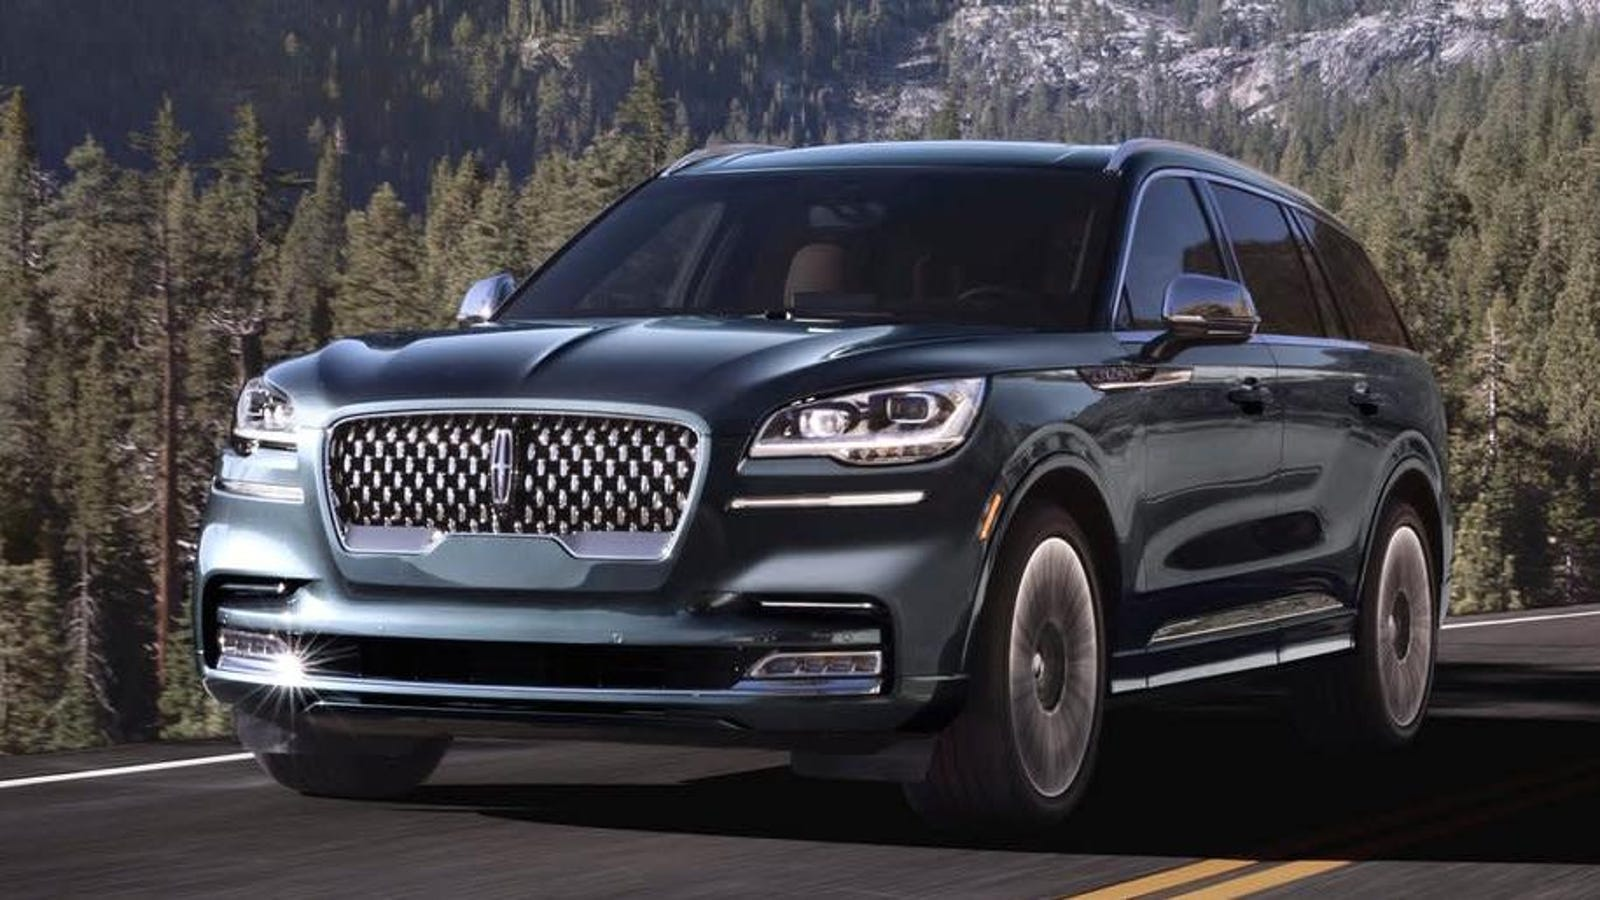 Actually The 2020 Lincoln Aviator Makes Almost 500 HP For Some Reason